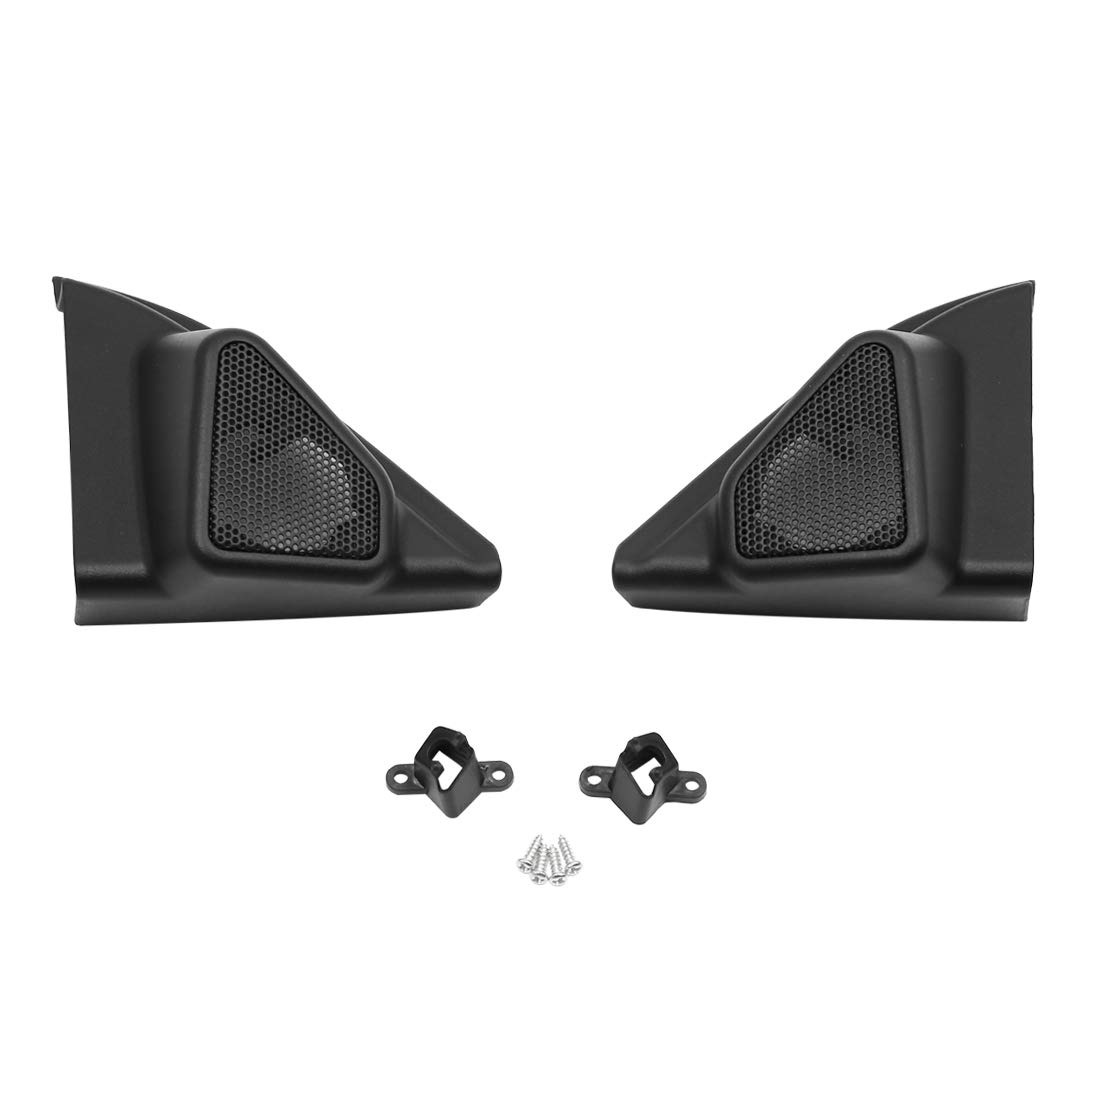 uxcell Pair Black Car Speaker Trim Cover Tweeter Protector for 2014 Toyota Levin